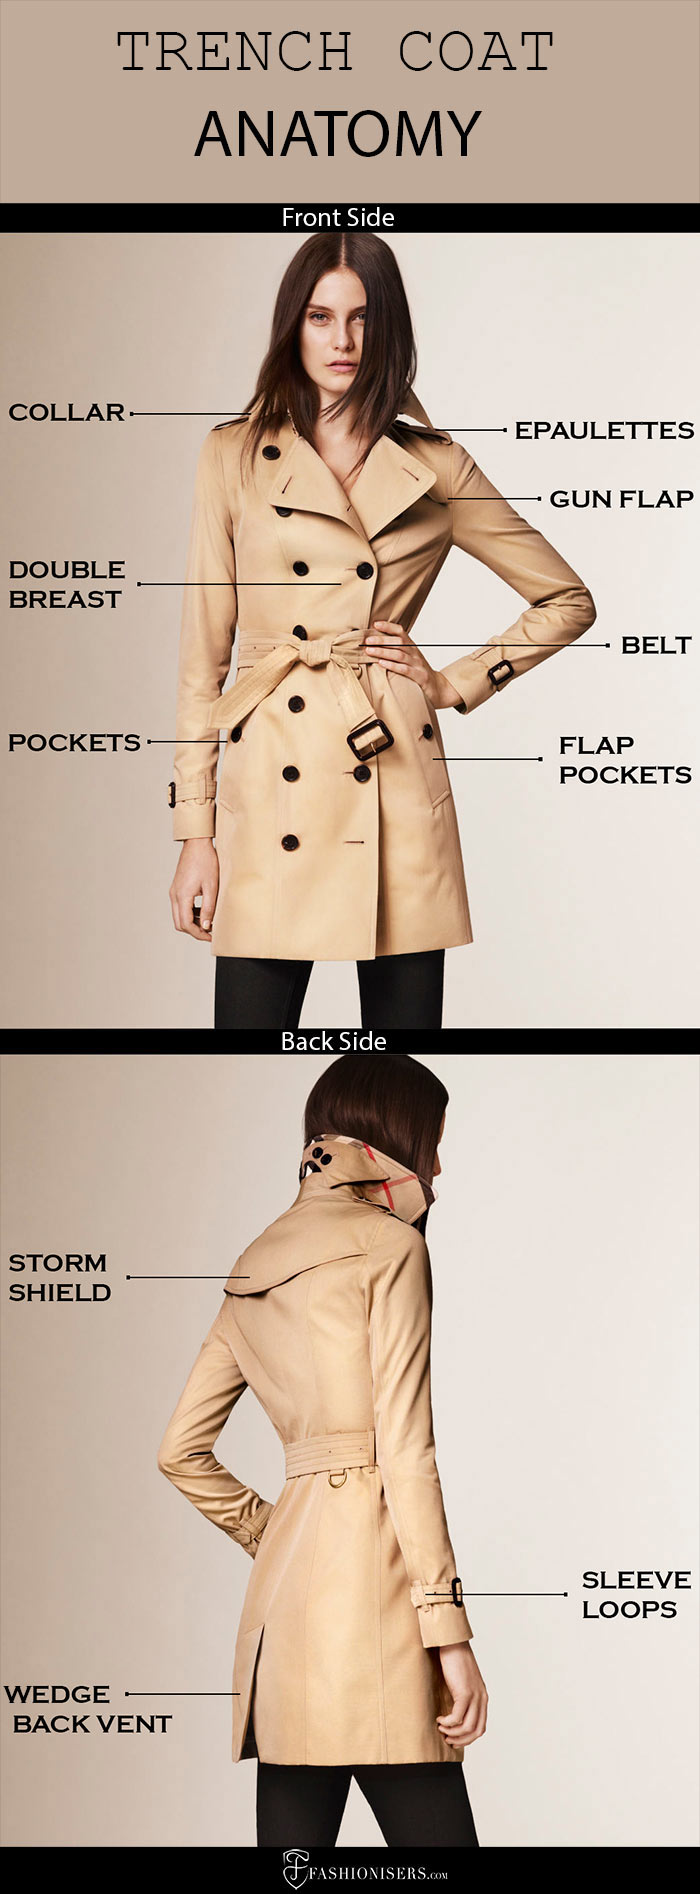 The Anatomy of a Trench Coat: How To Wear It | Fashionisers